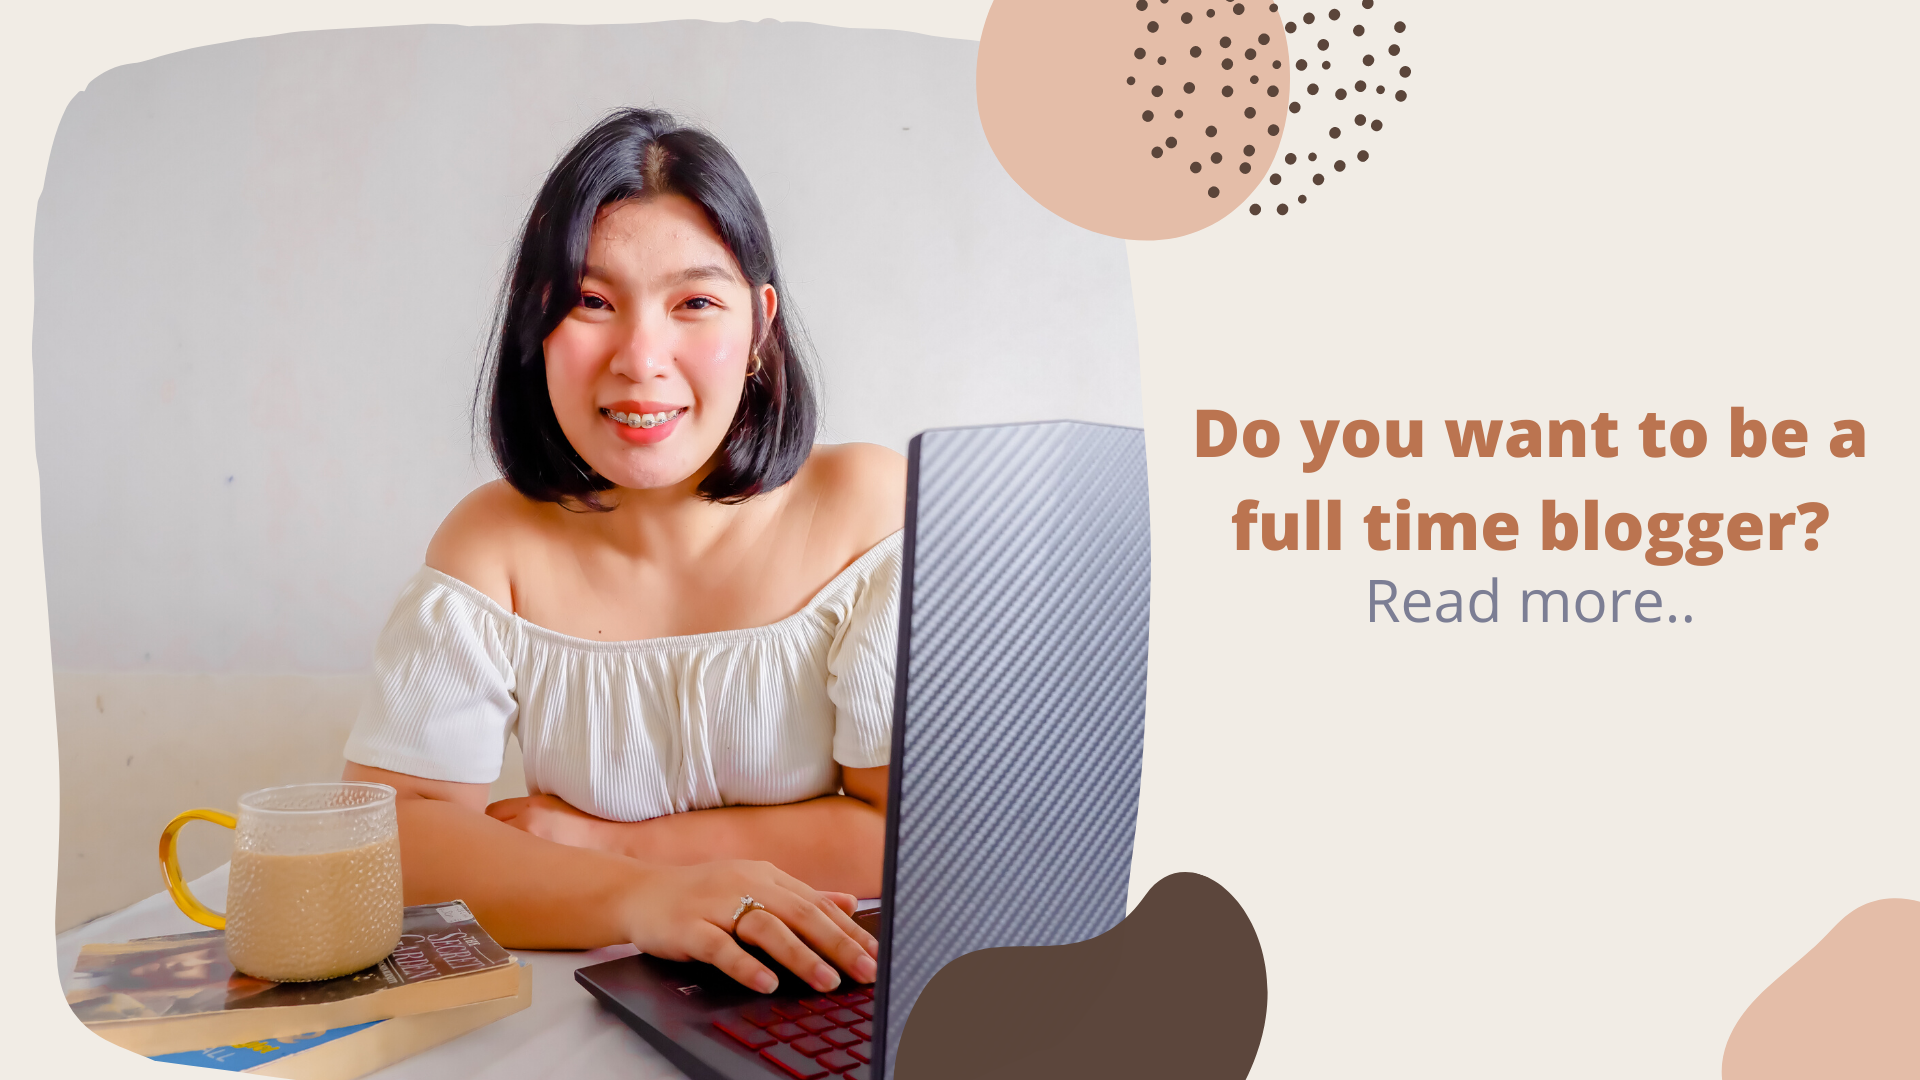 Become a full-time blogger with the help from LadyBossBlogger. Also, enter my giveaway to win a FREE Course of your choice.